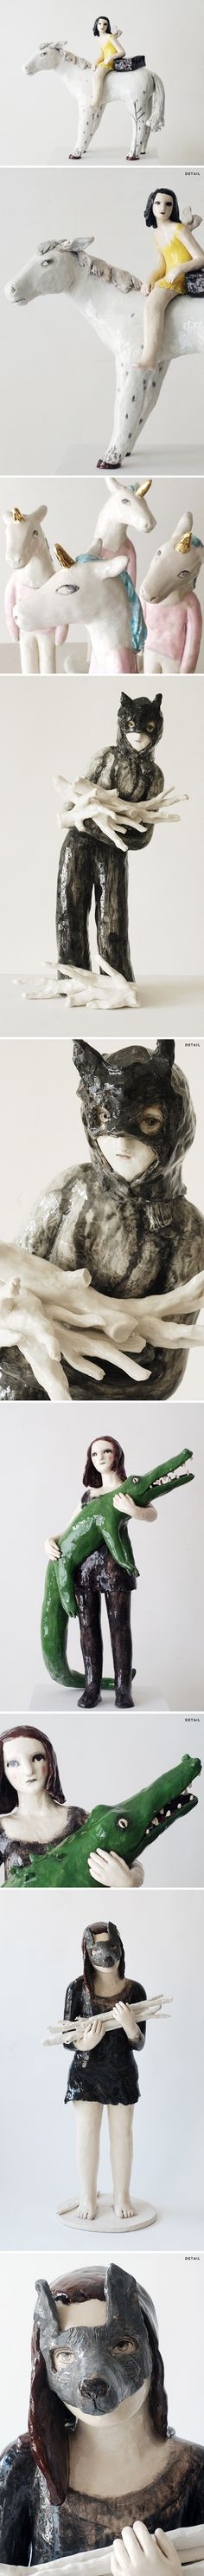 ceramics by french artist clementine de chabaneix <3